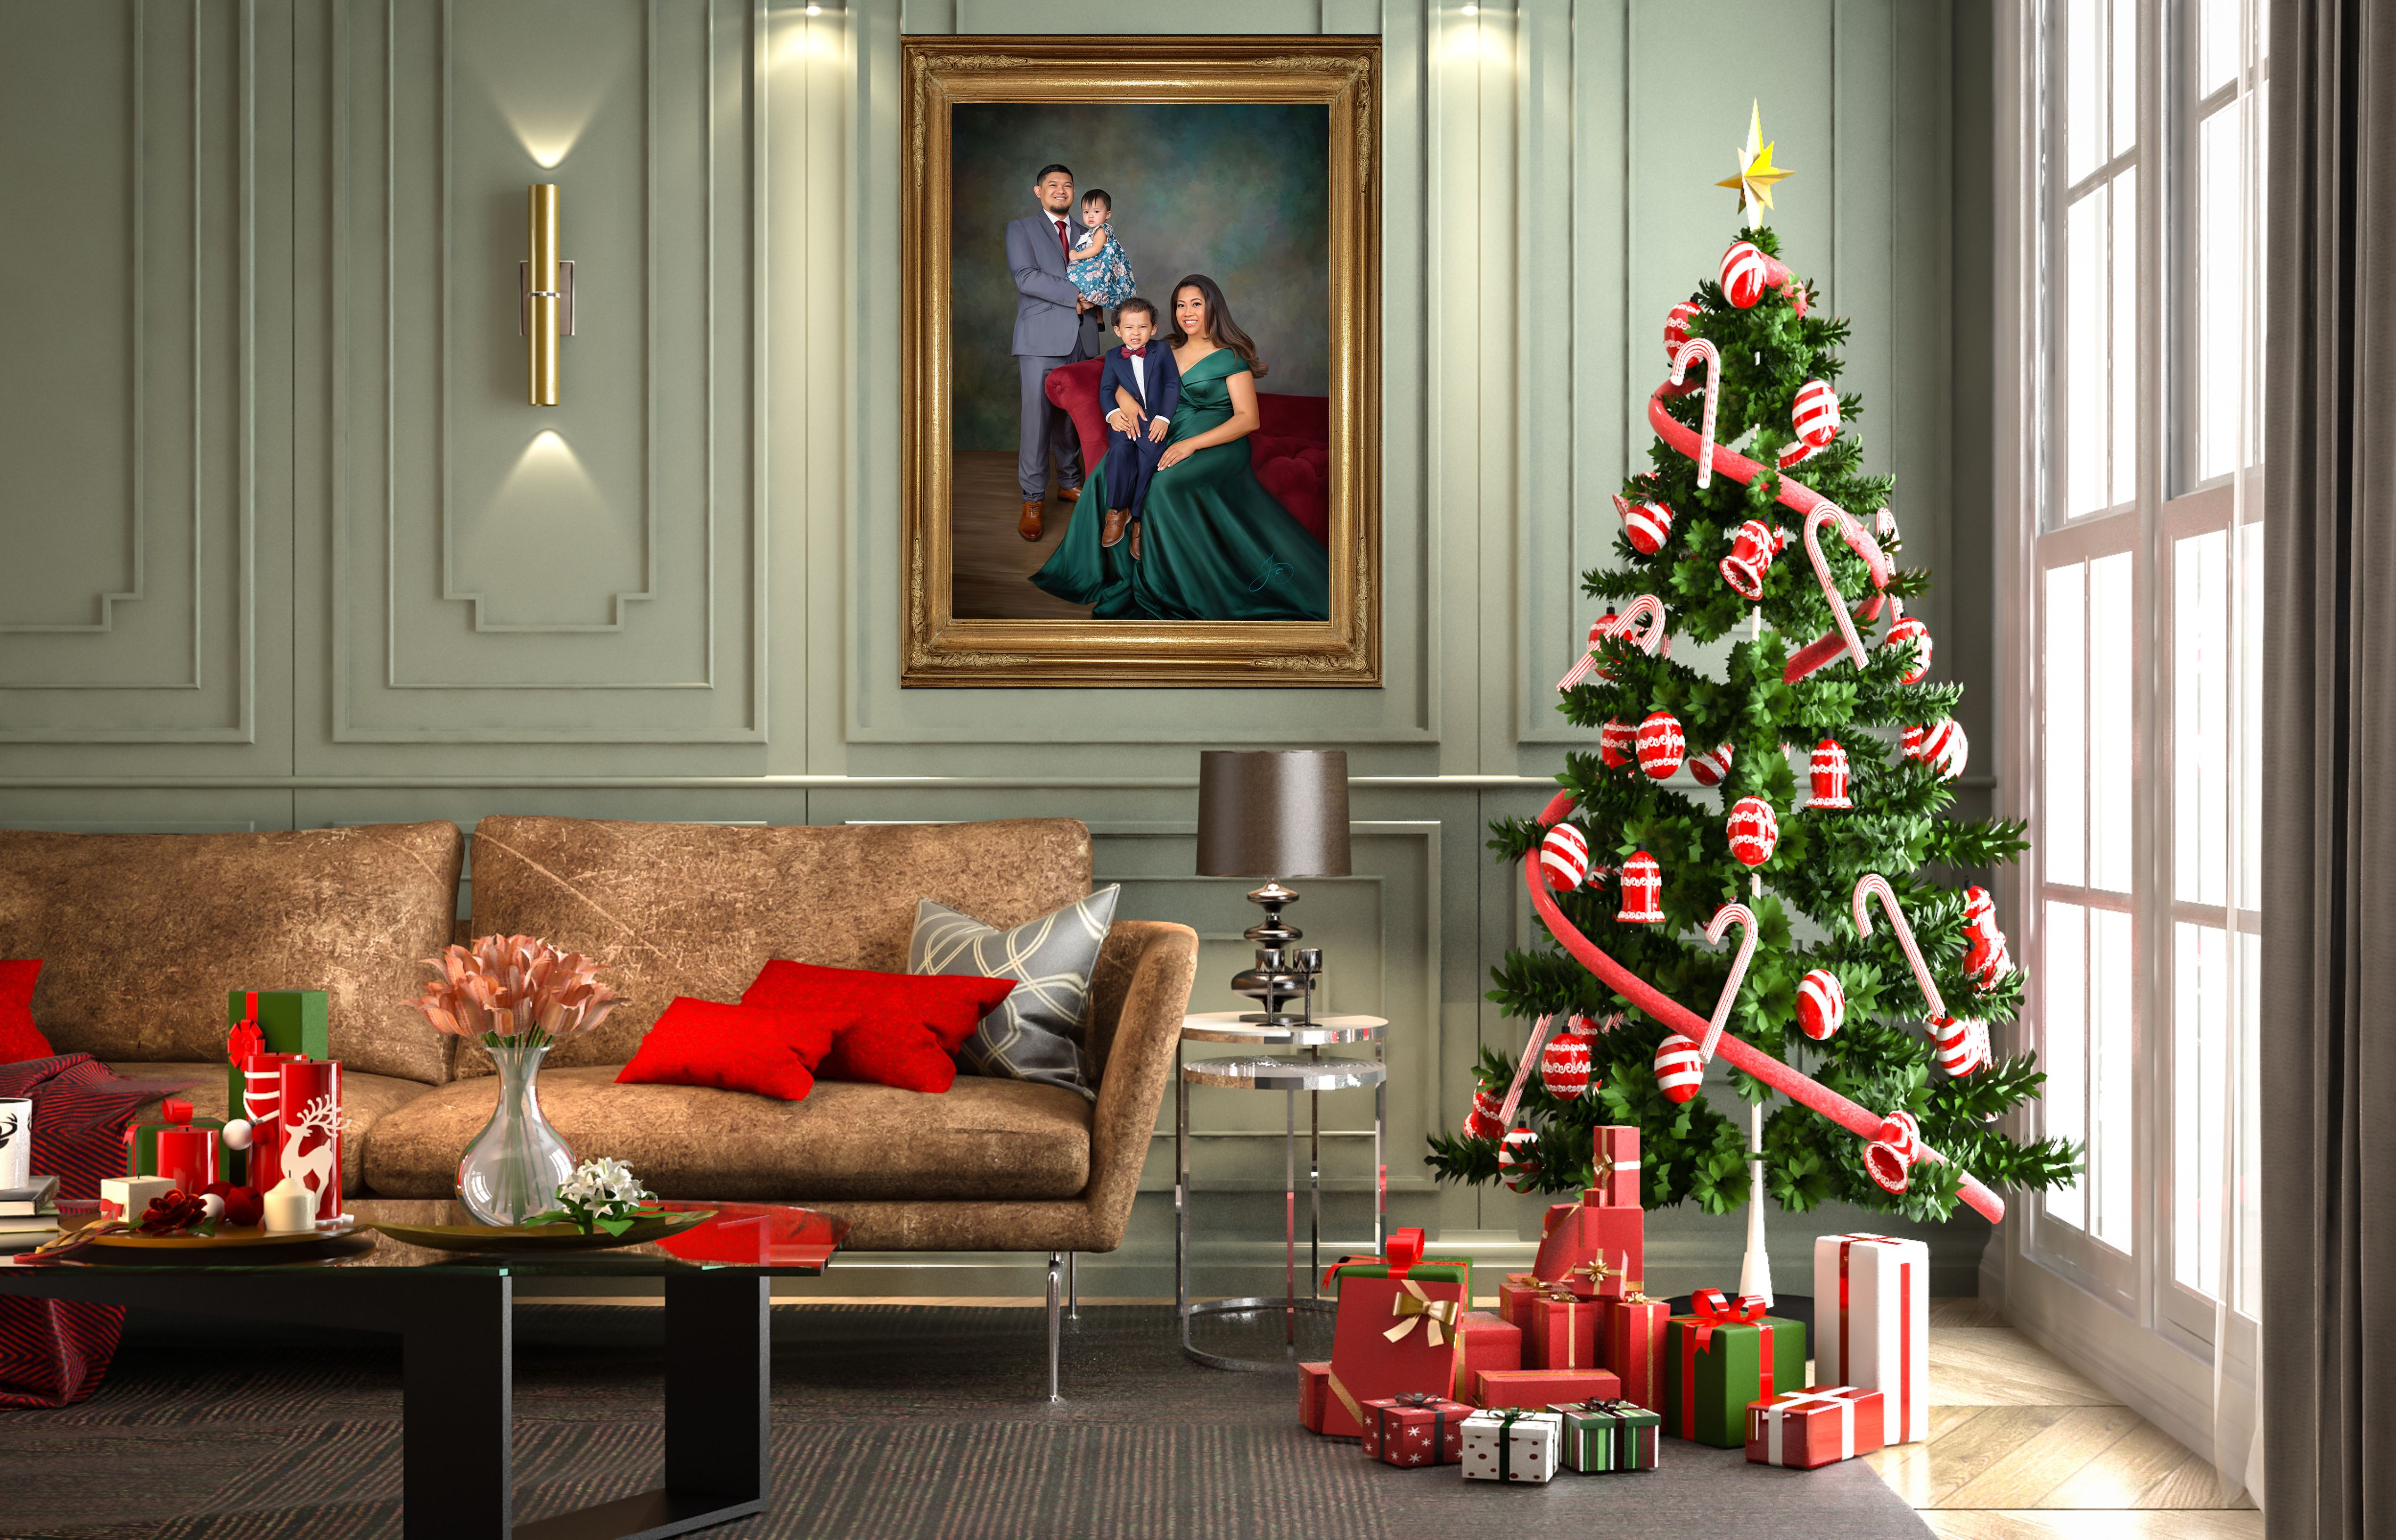 The Perfect Holiday Setting Imagine Your Living Room Looking Like This Celebrate Your Family Art In 2021 Holiday Decor Decor Christmas Images Holiday living room background